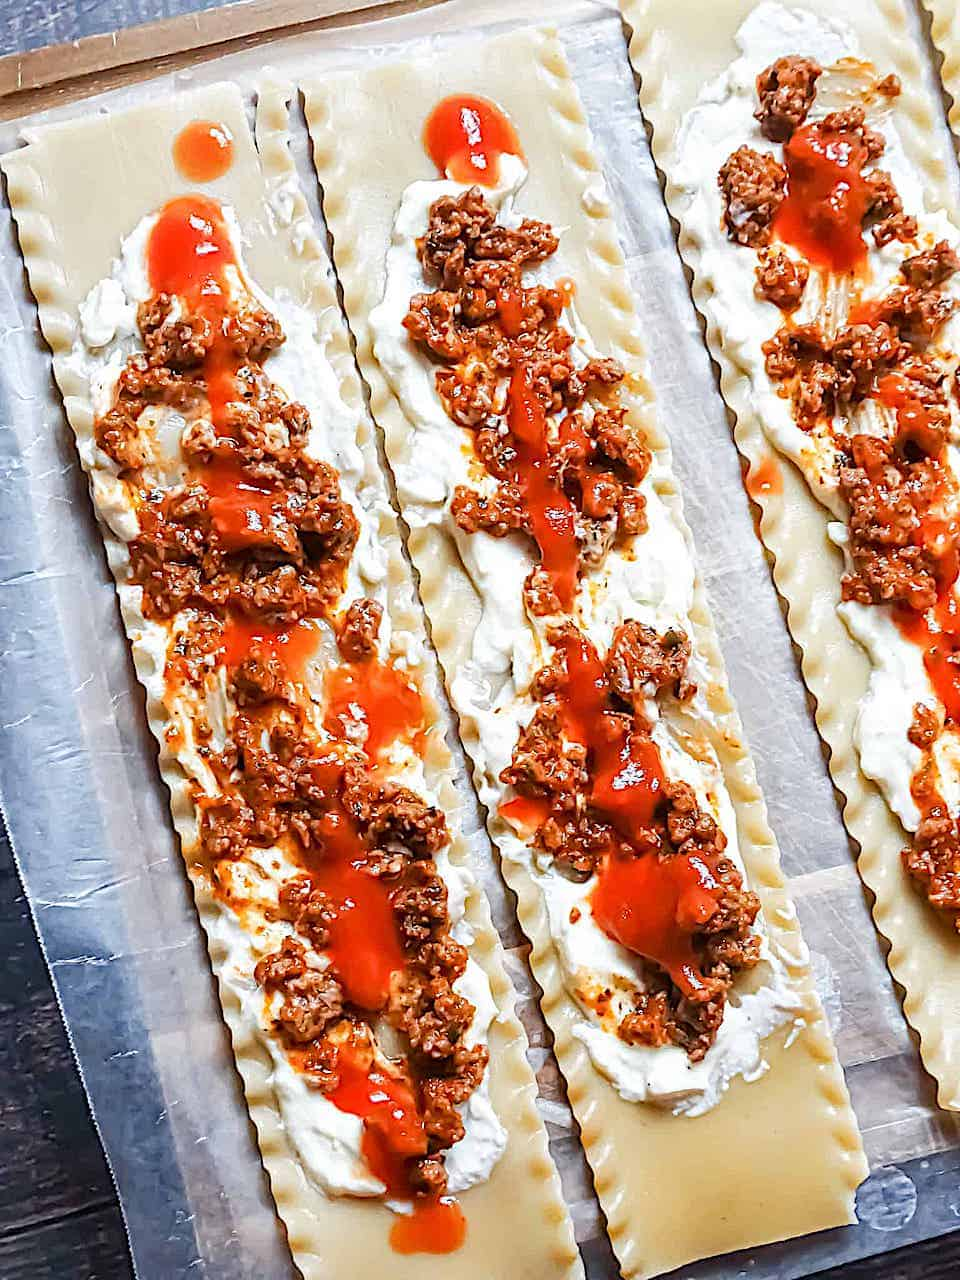 asagna roll ups unrolled and filled with cream filling and beefy tomato mixture